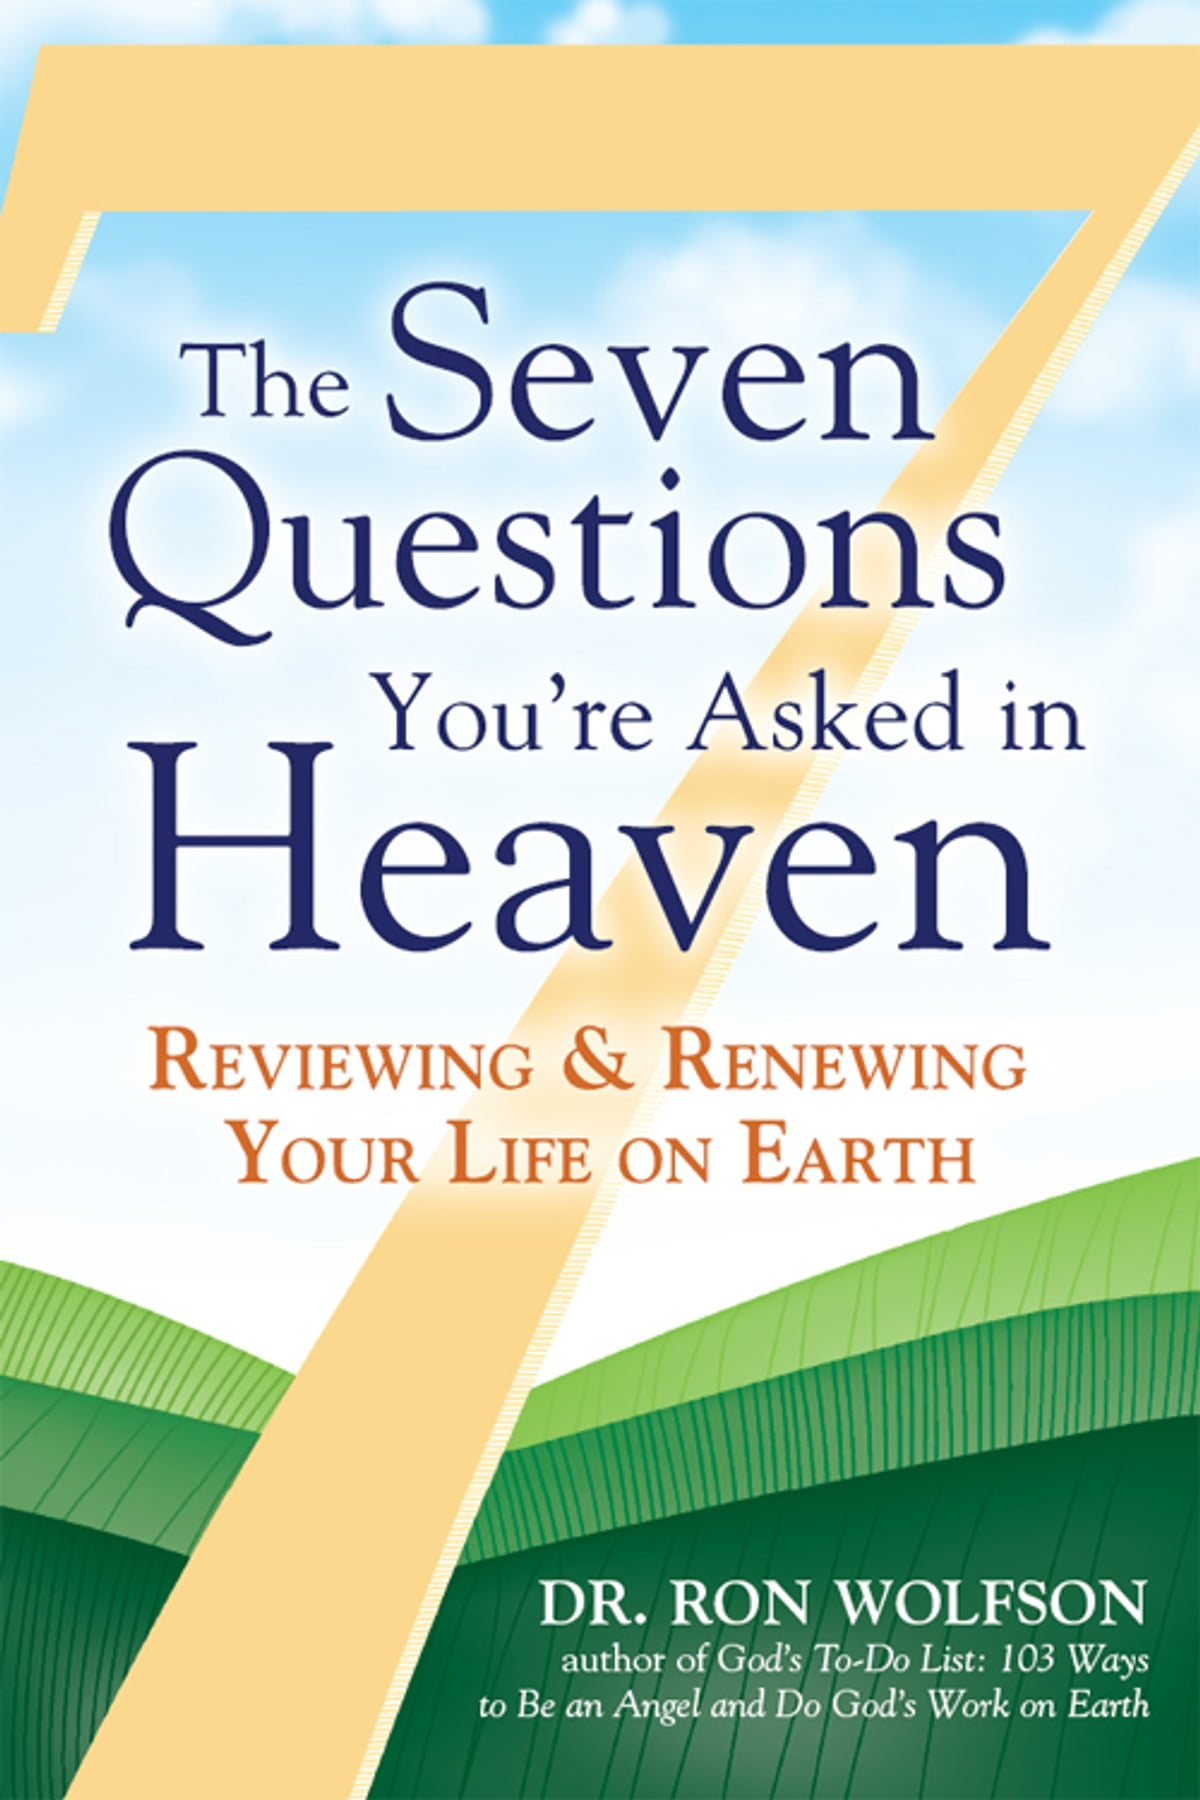 The Seven Questions Youre Asked in Heaven eBook by Dr. Ron Wolfson -  9781580234696 | Rakuten Kobo